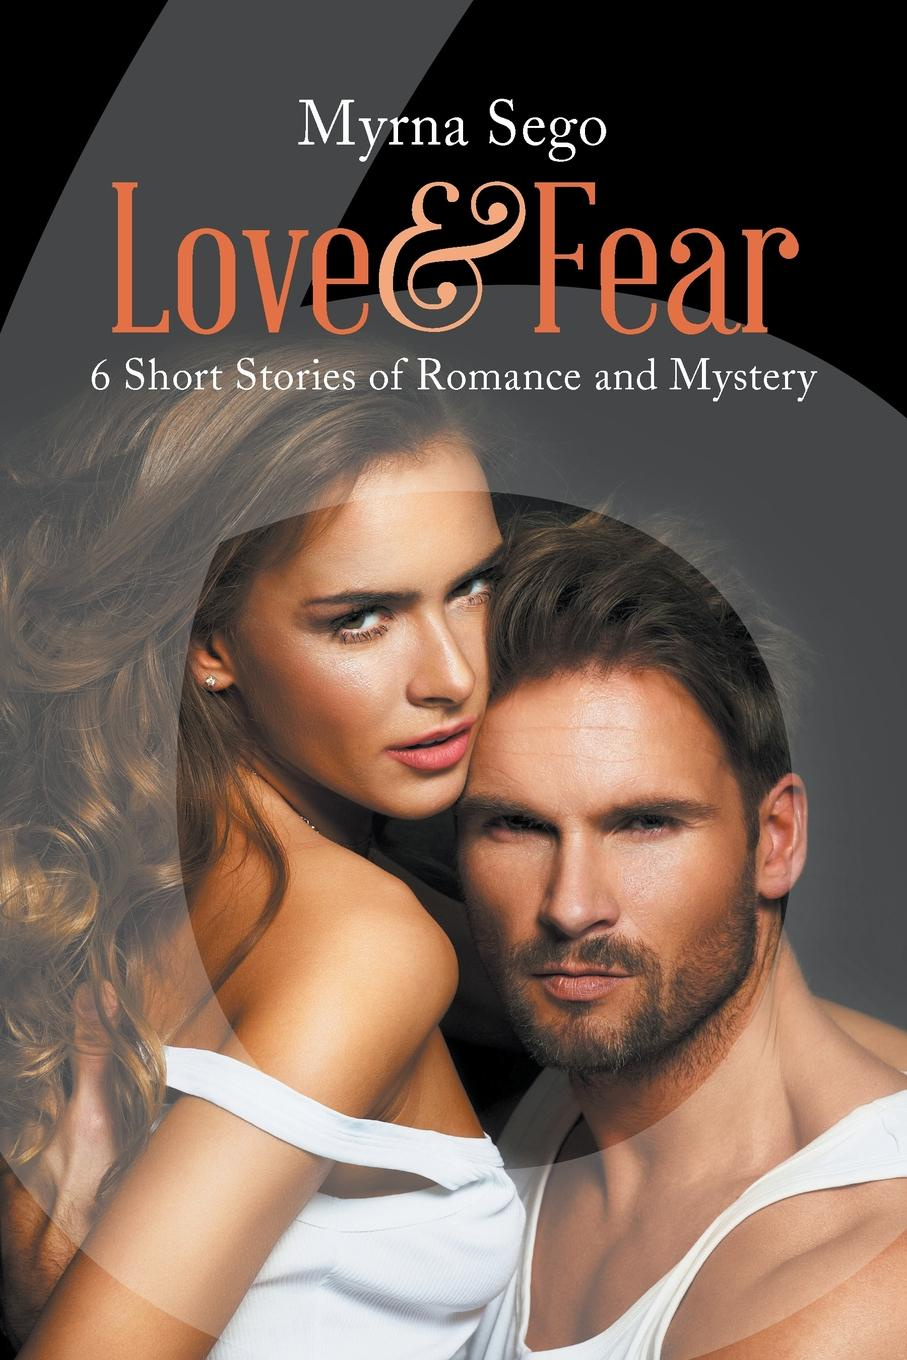 Myrna Sego Love and Fear. 6 short stories of romance & mystery terence kuch love fear sofa